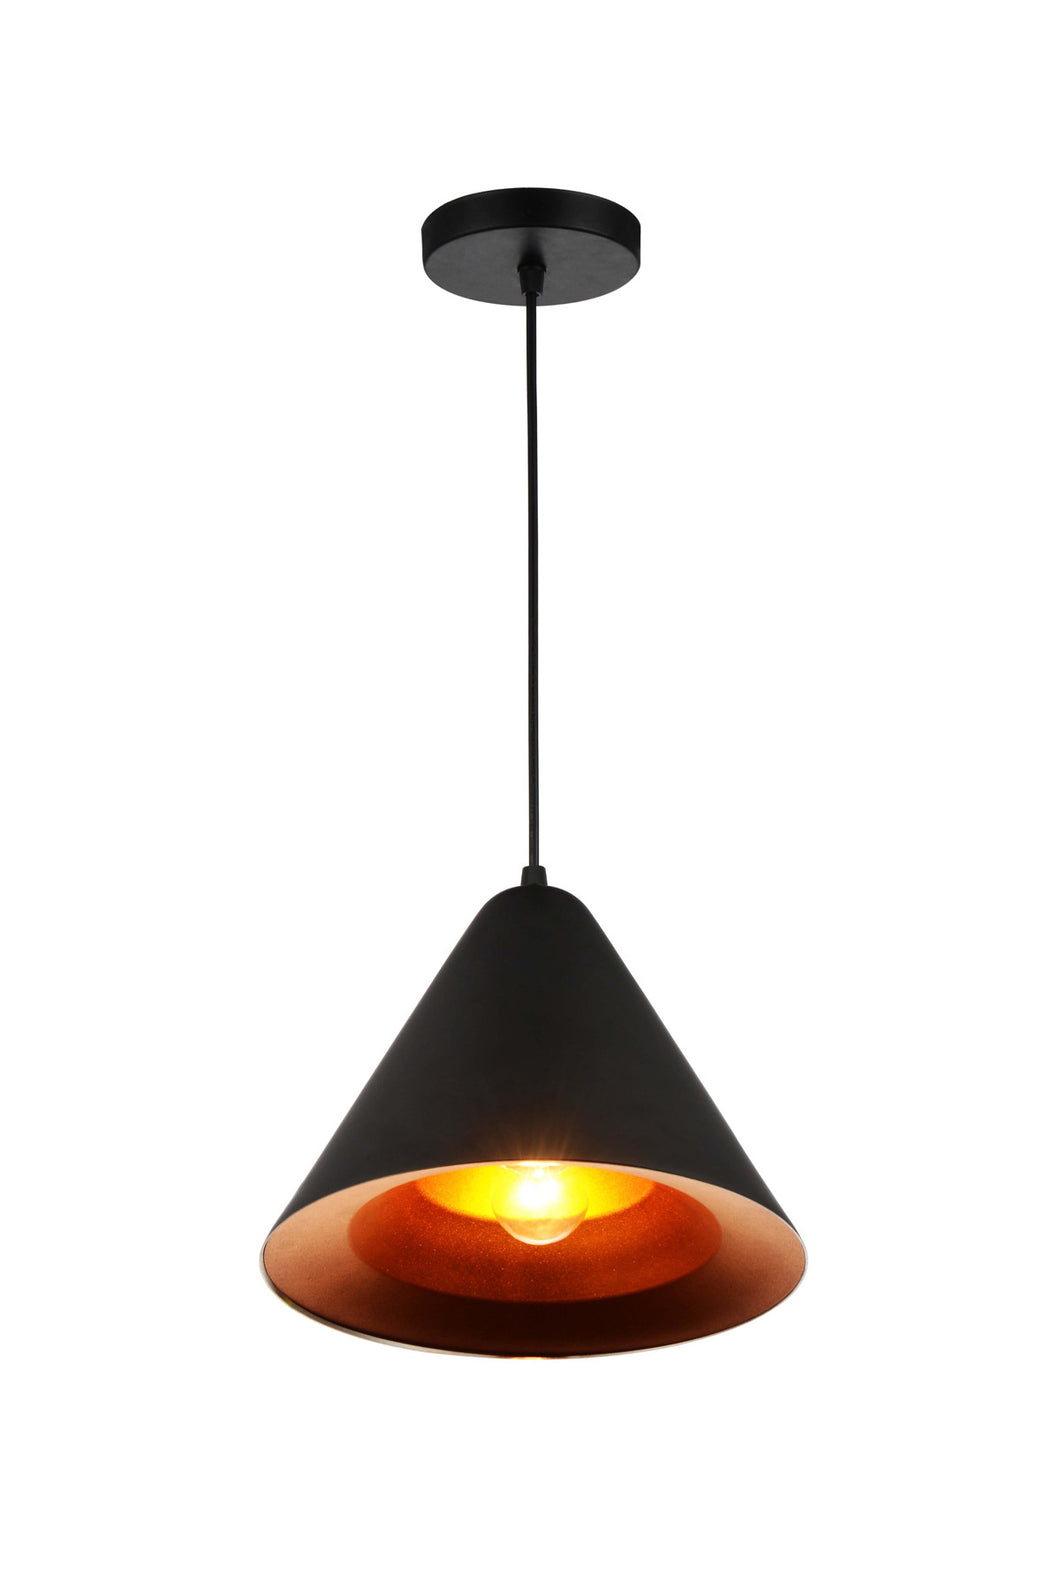 1 Light Down Pendant with Black & Gold finish